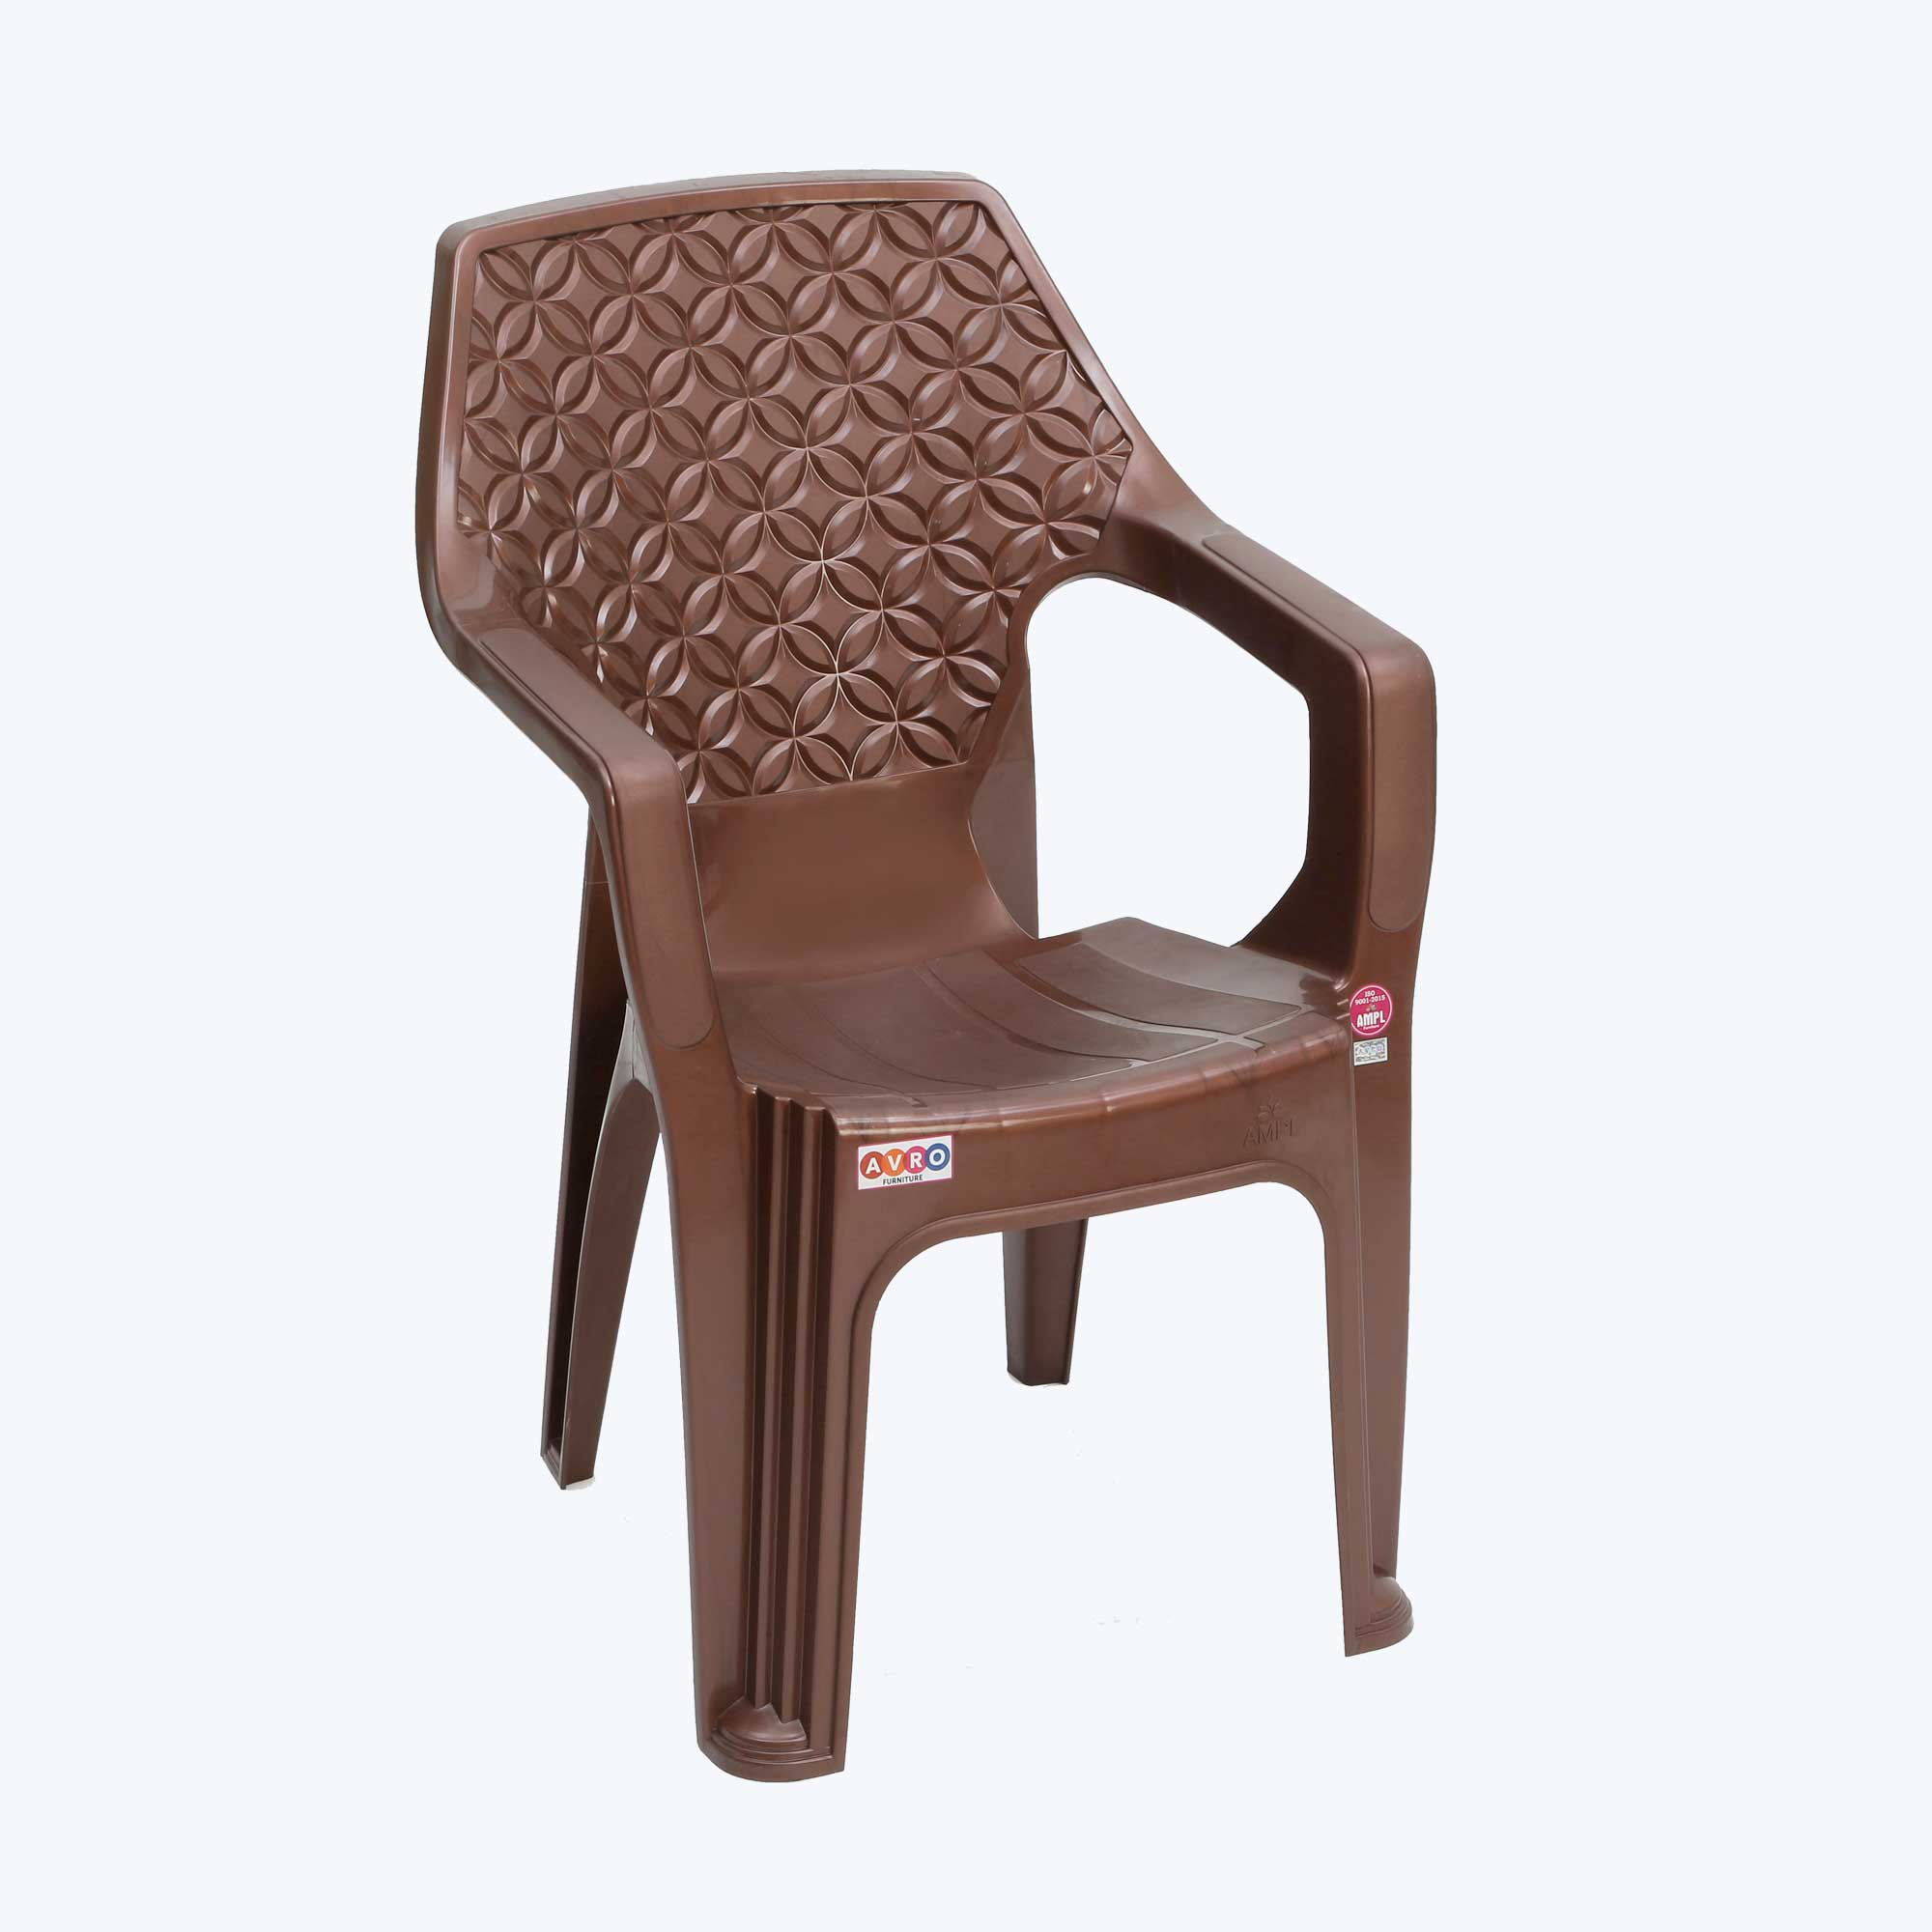 plastic seating chairs